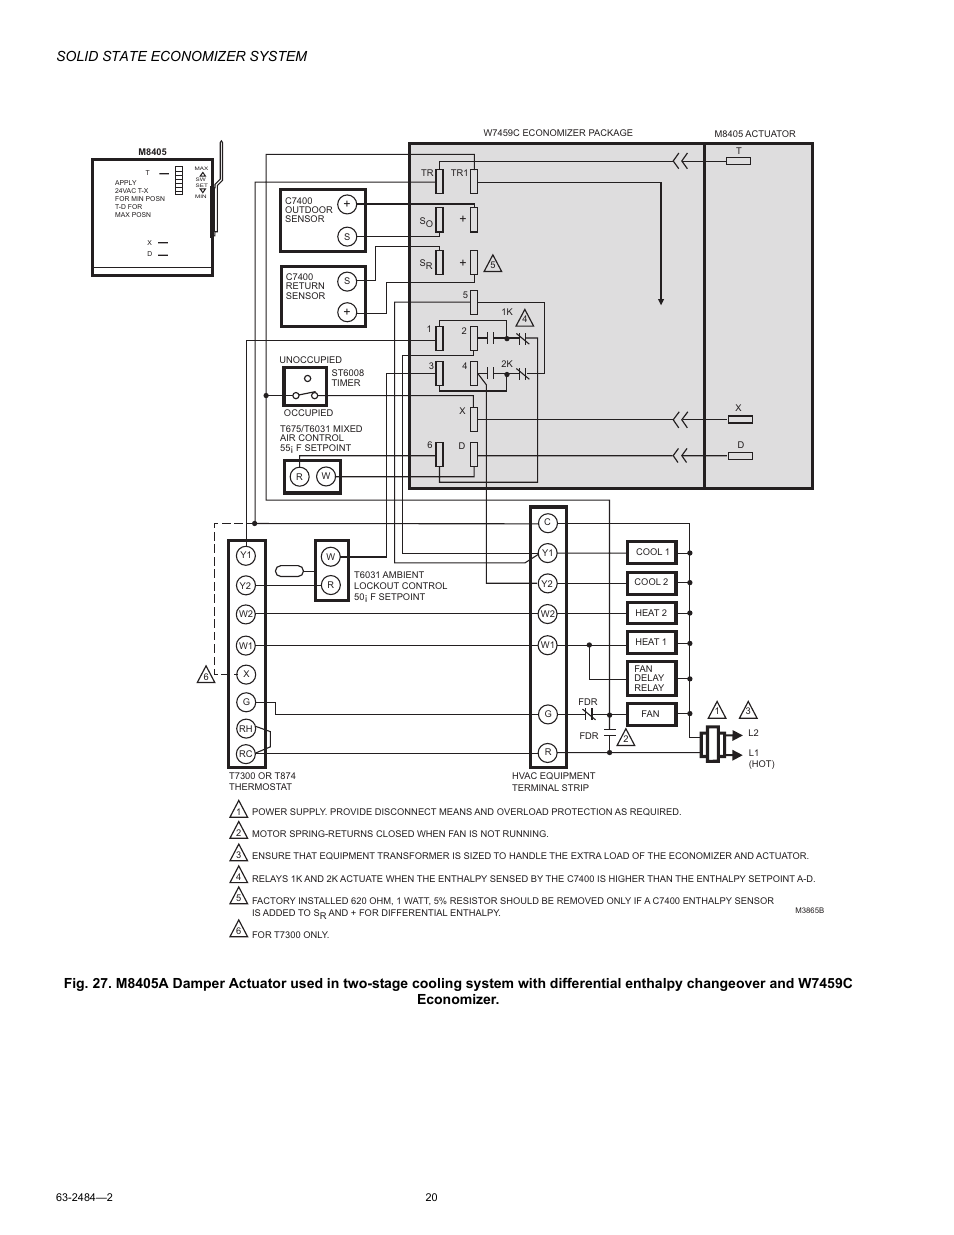 Solid State Economizer System Honeywell M8405 User Manual Page Wiring Diagram 20 32